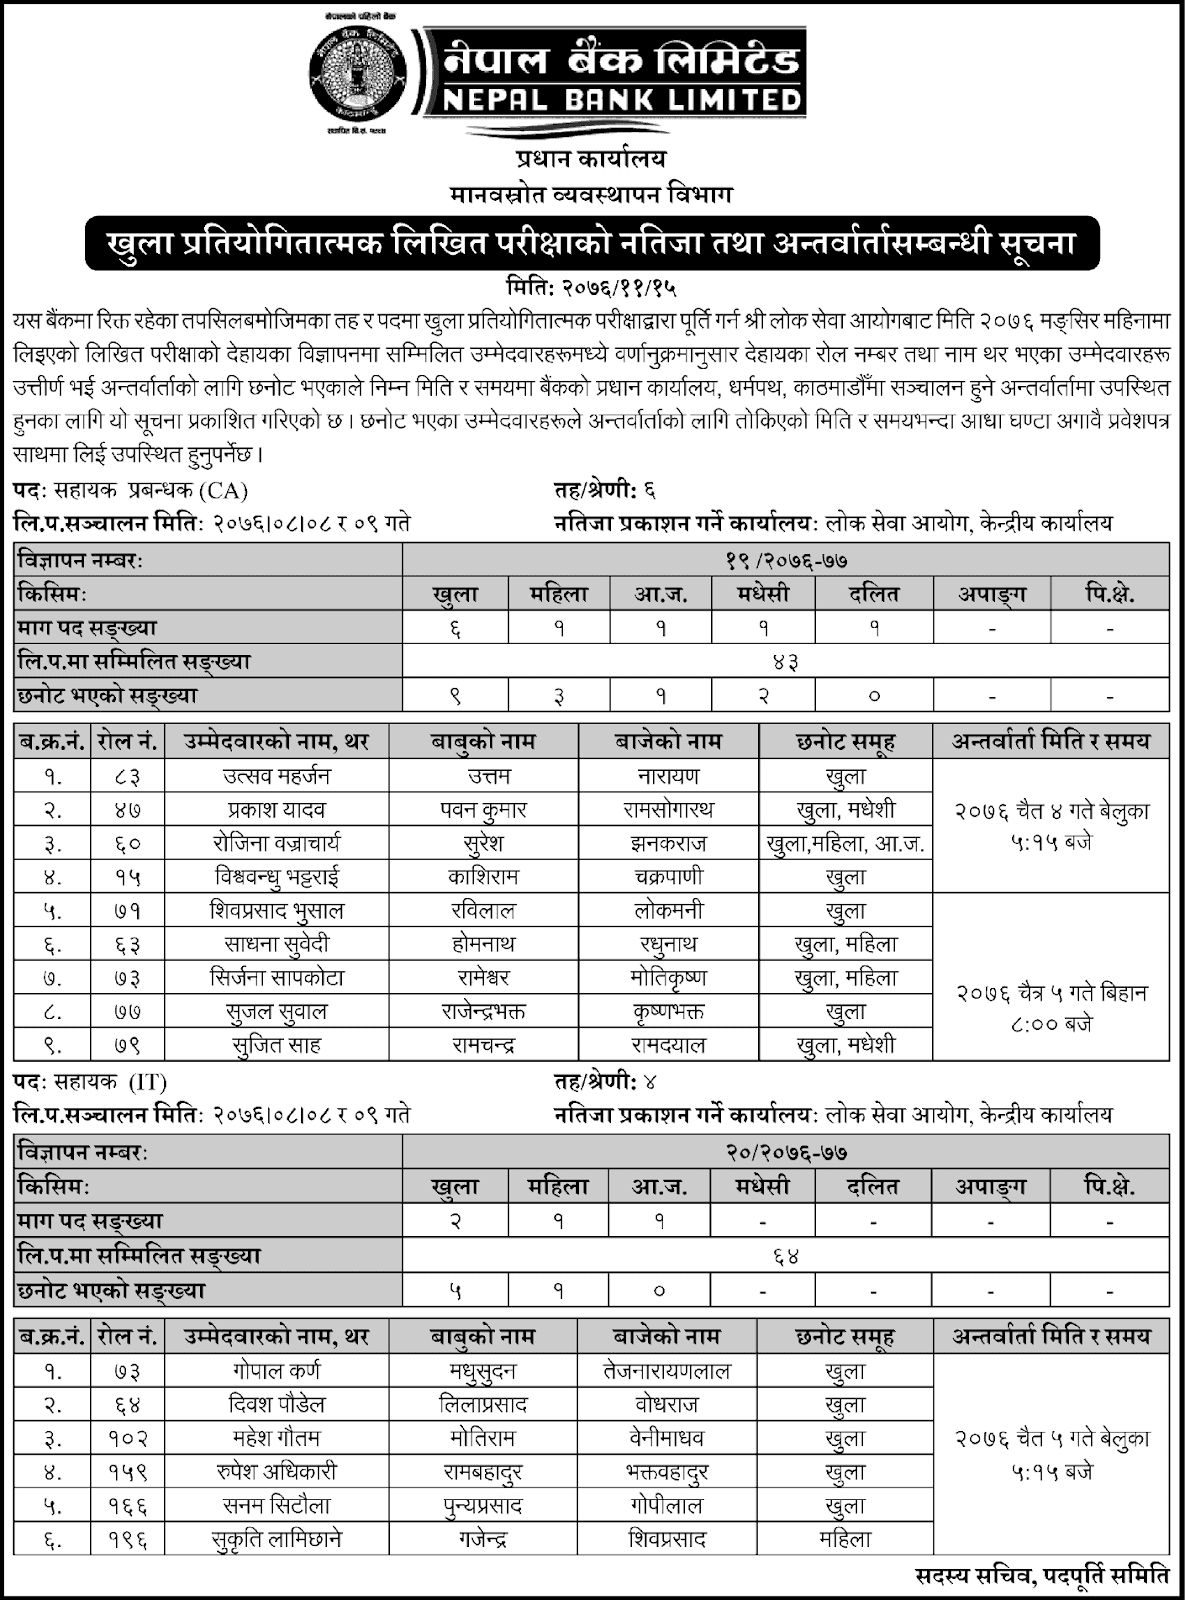 Nepal Bank Limited Written Examination Result and Interview Schedule